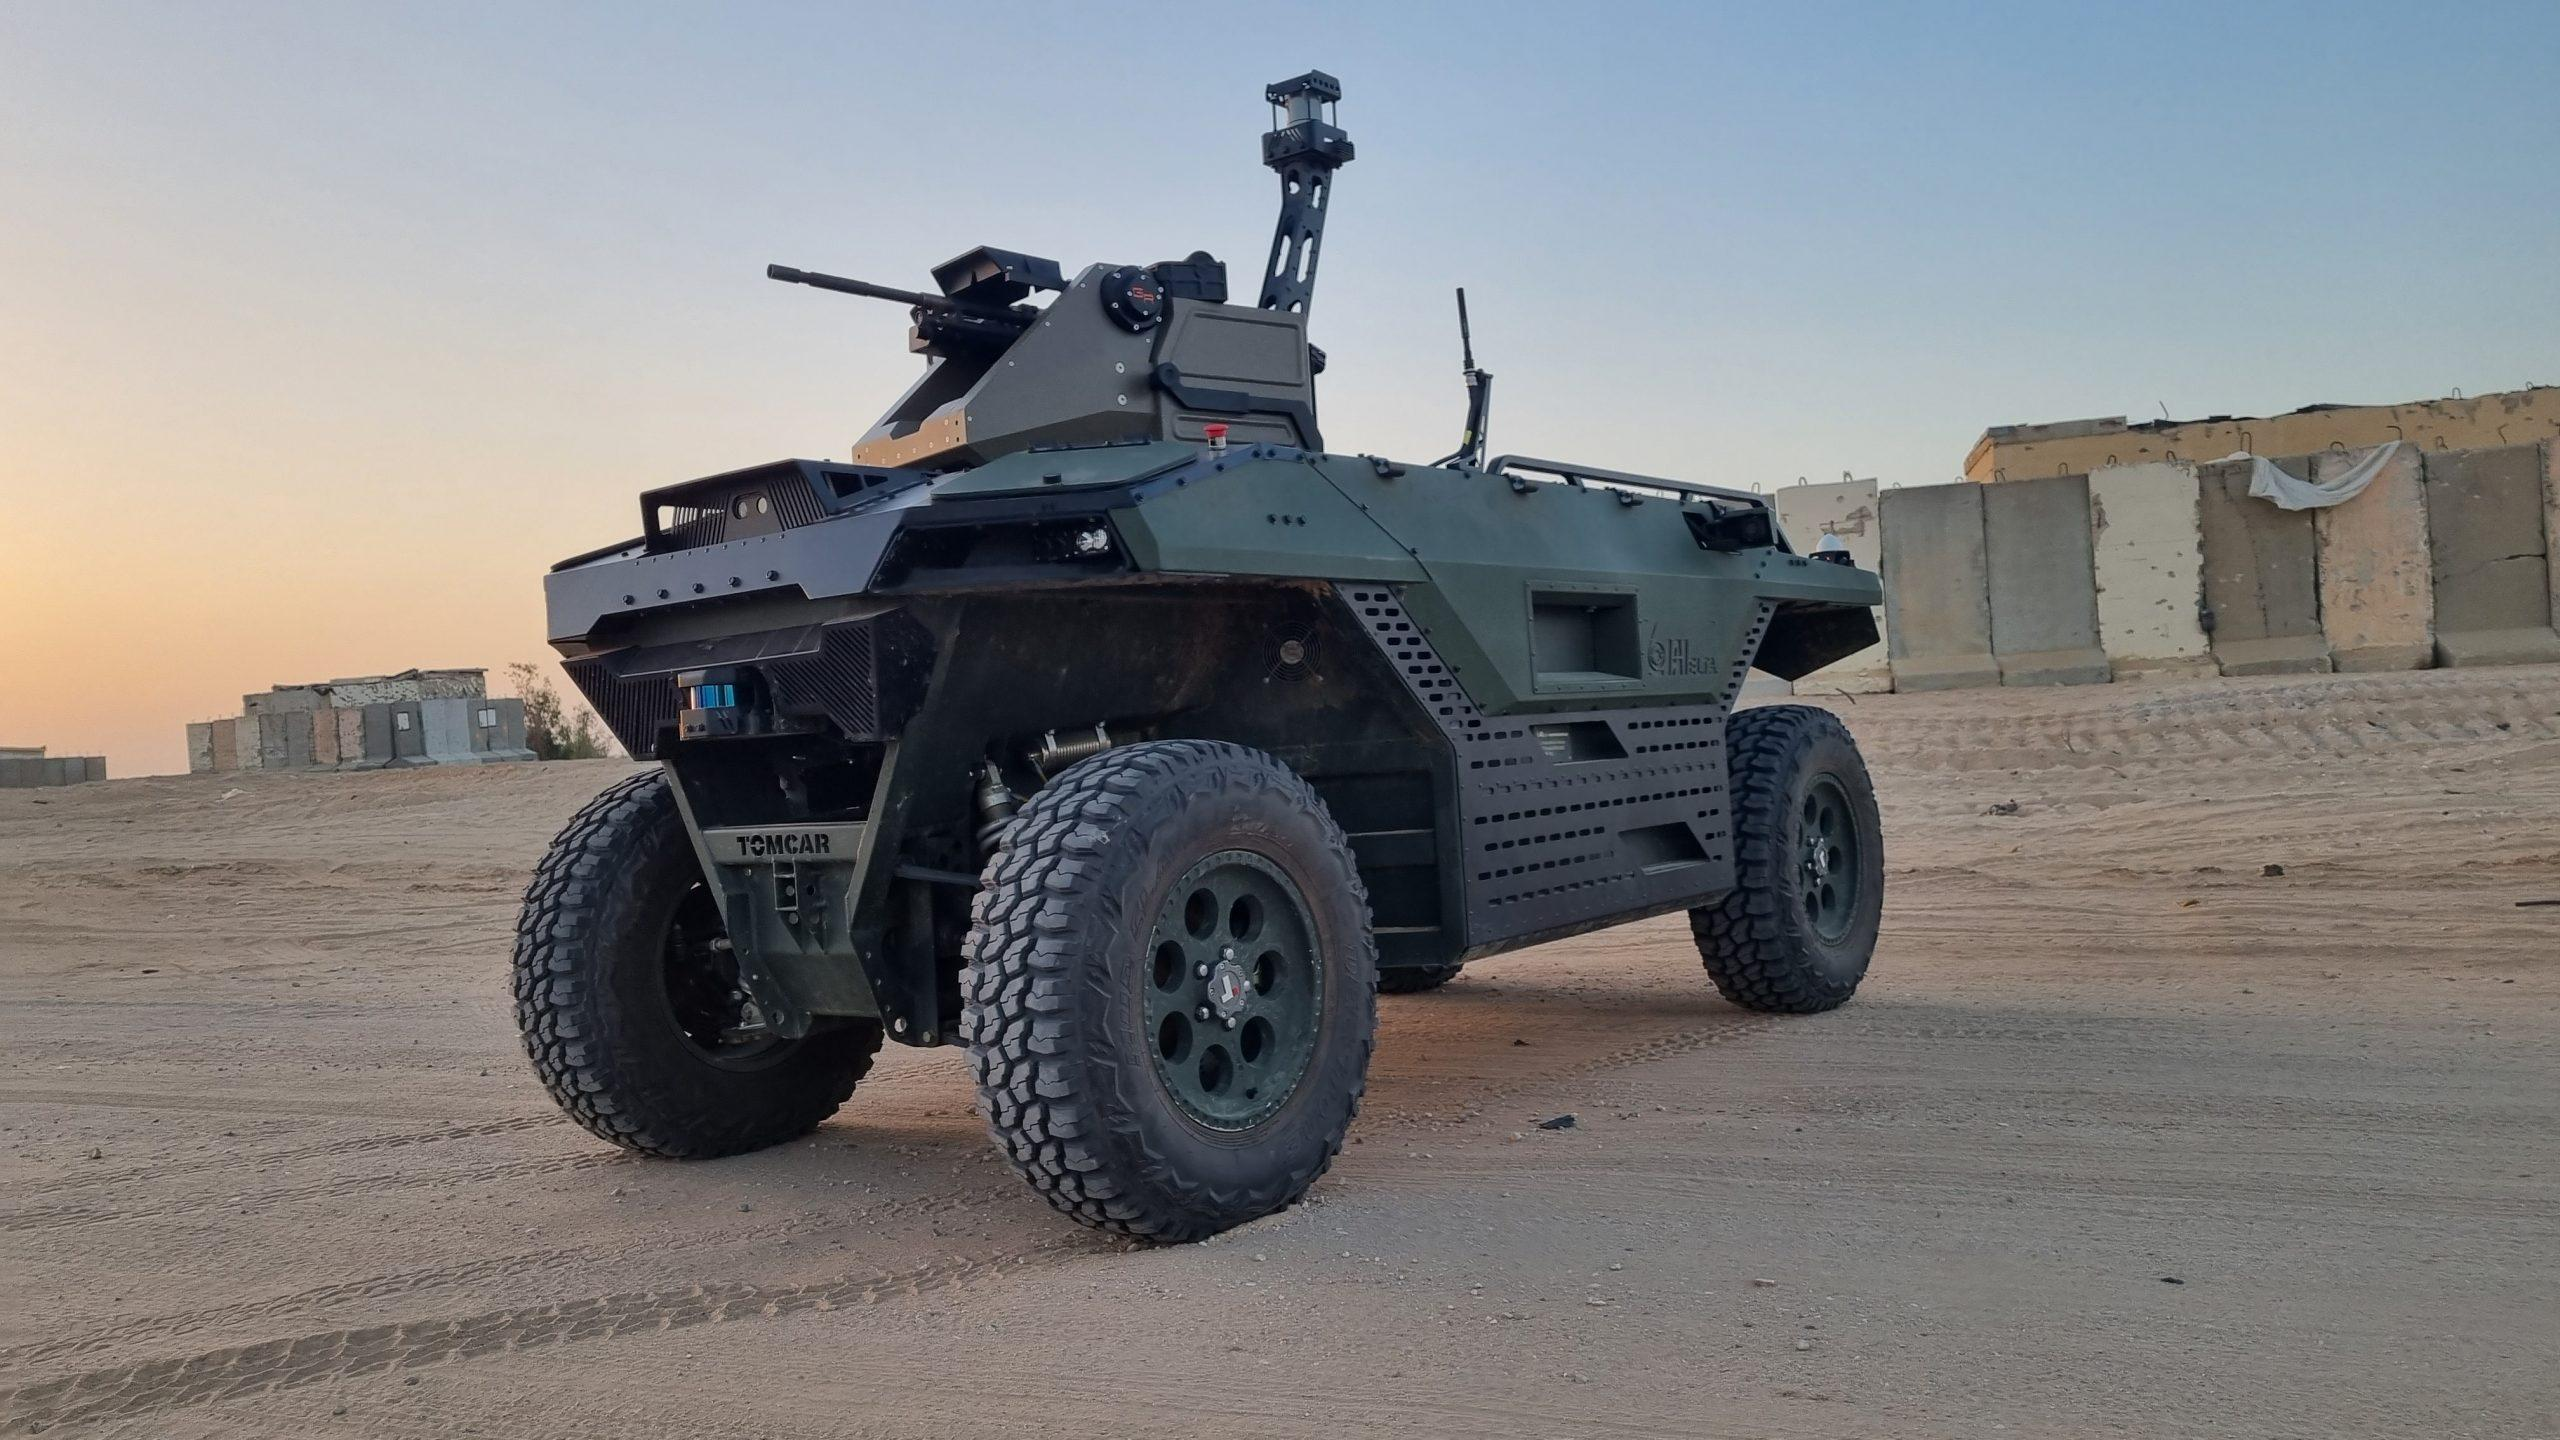 Israel Aerospace Industries (IAI) will unveil the newest variant of the REX MK II unmanned land platform at DSEI